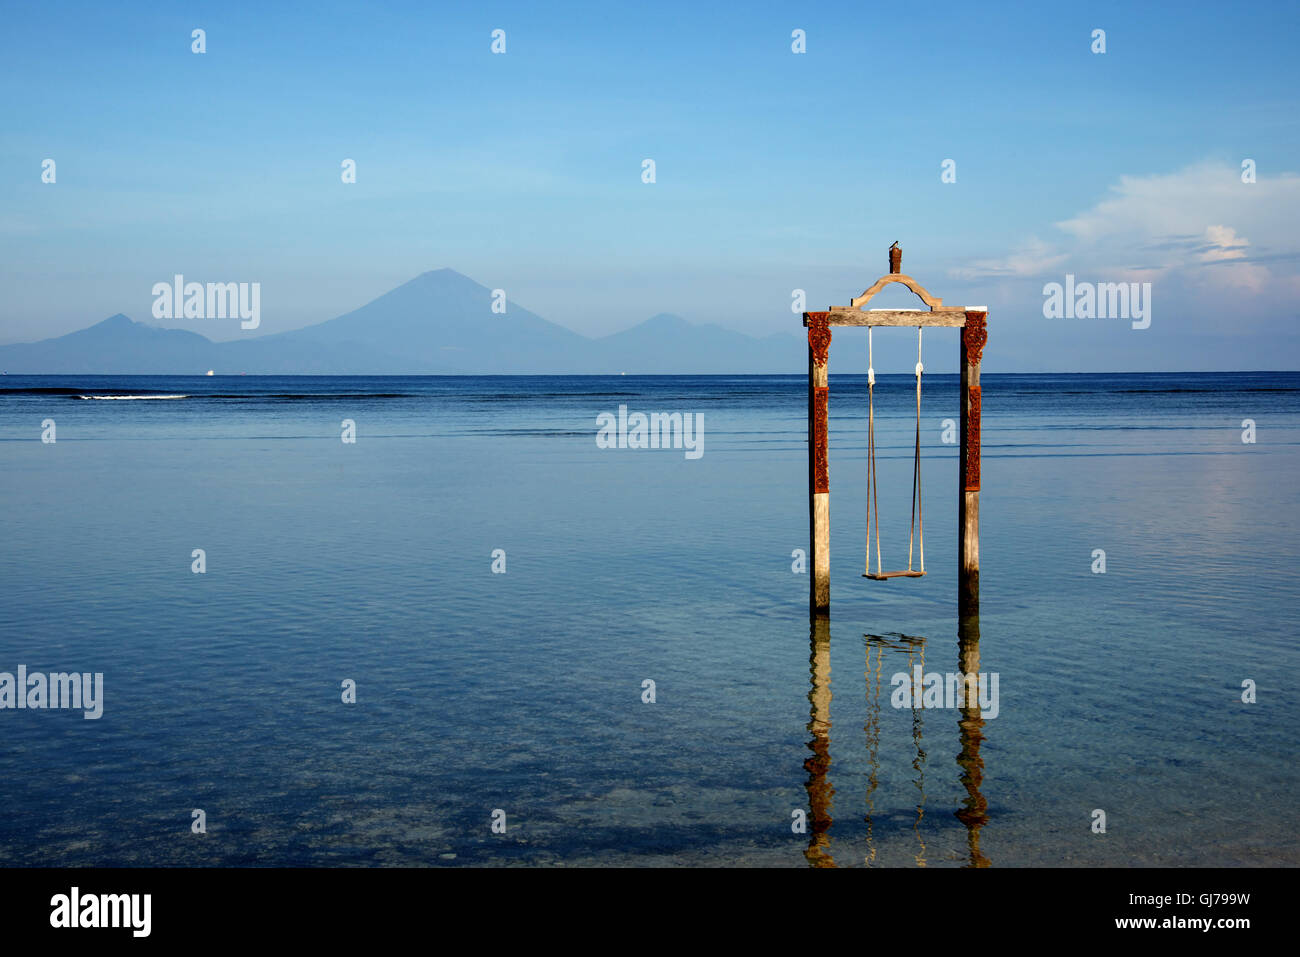 Agung Stock Photos, Royalty-Free Images &amp- Vectors - Shutterstock